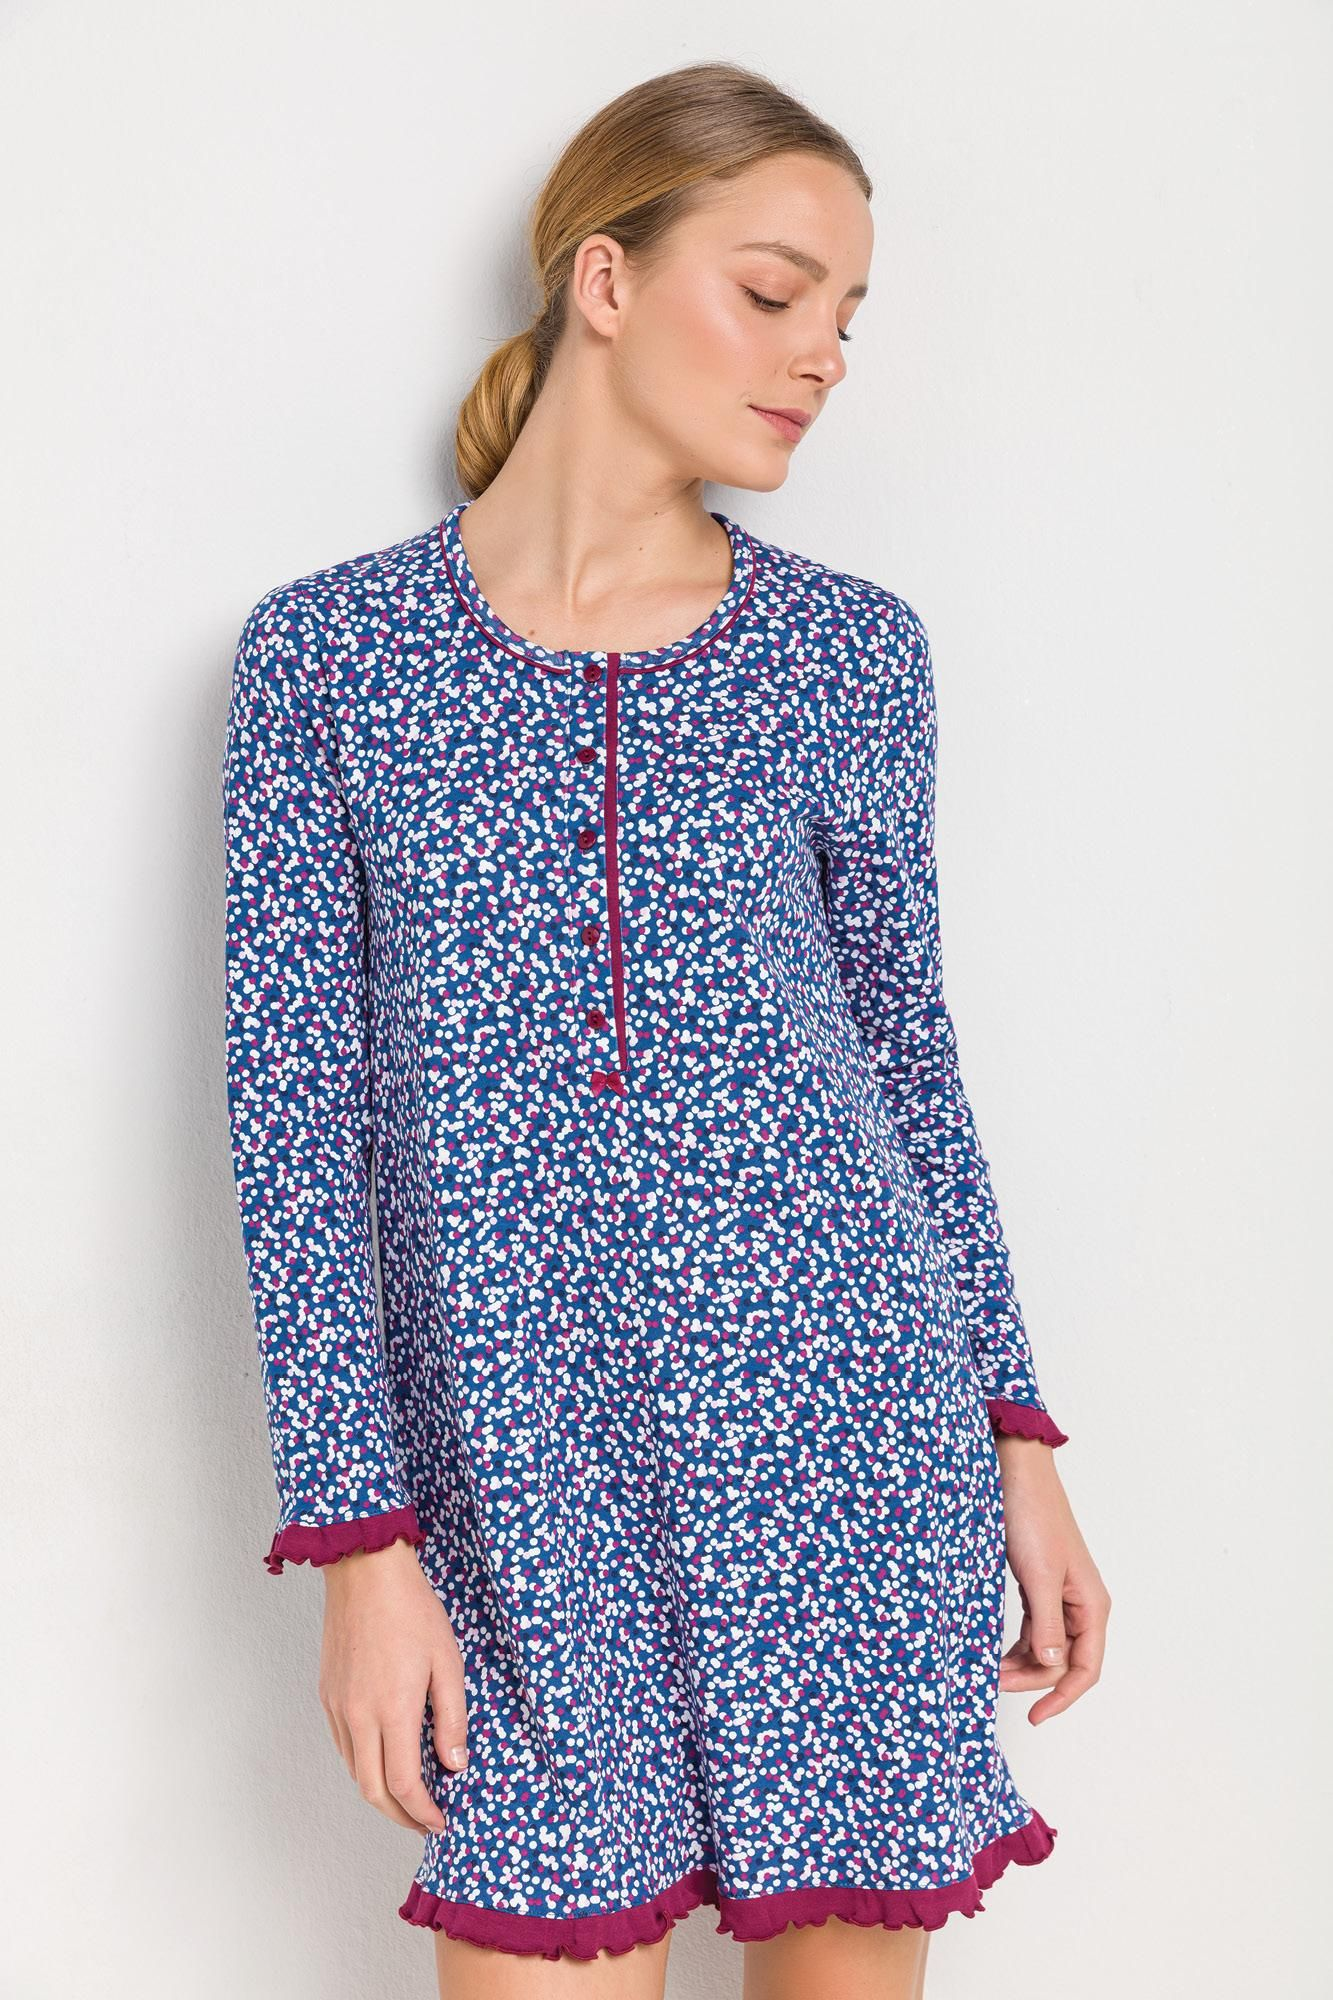 Women's Patterned Maternity Nightgown